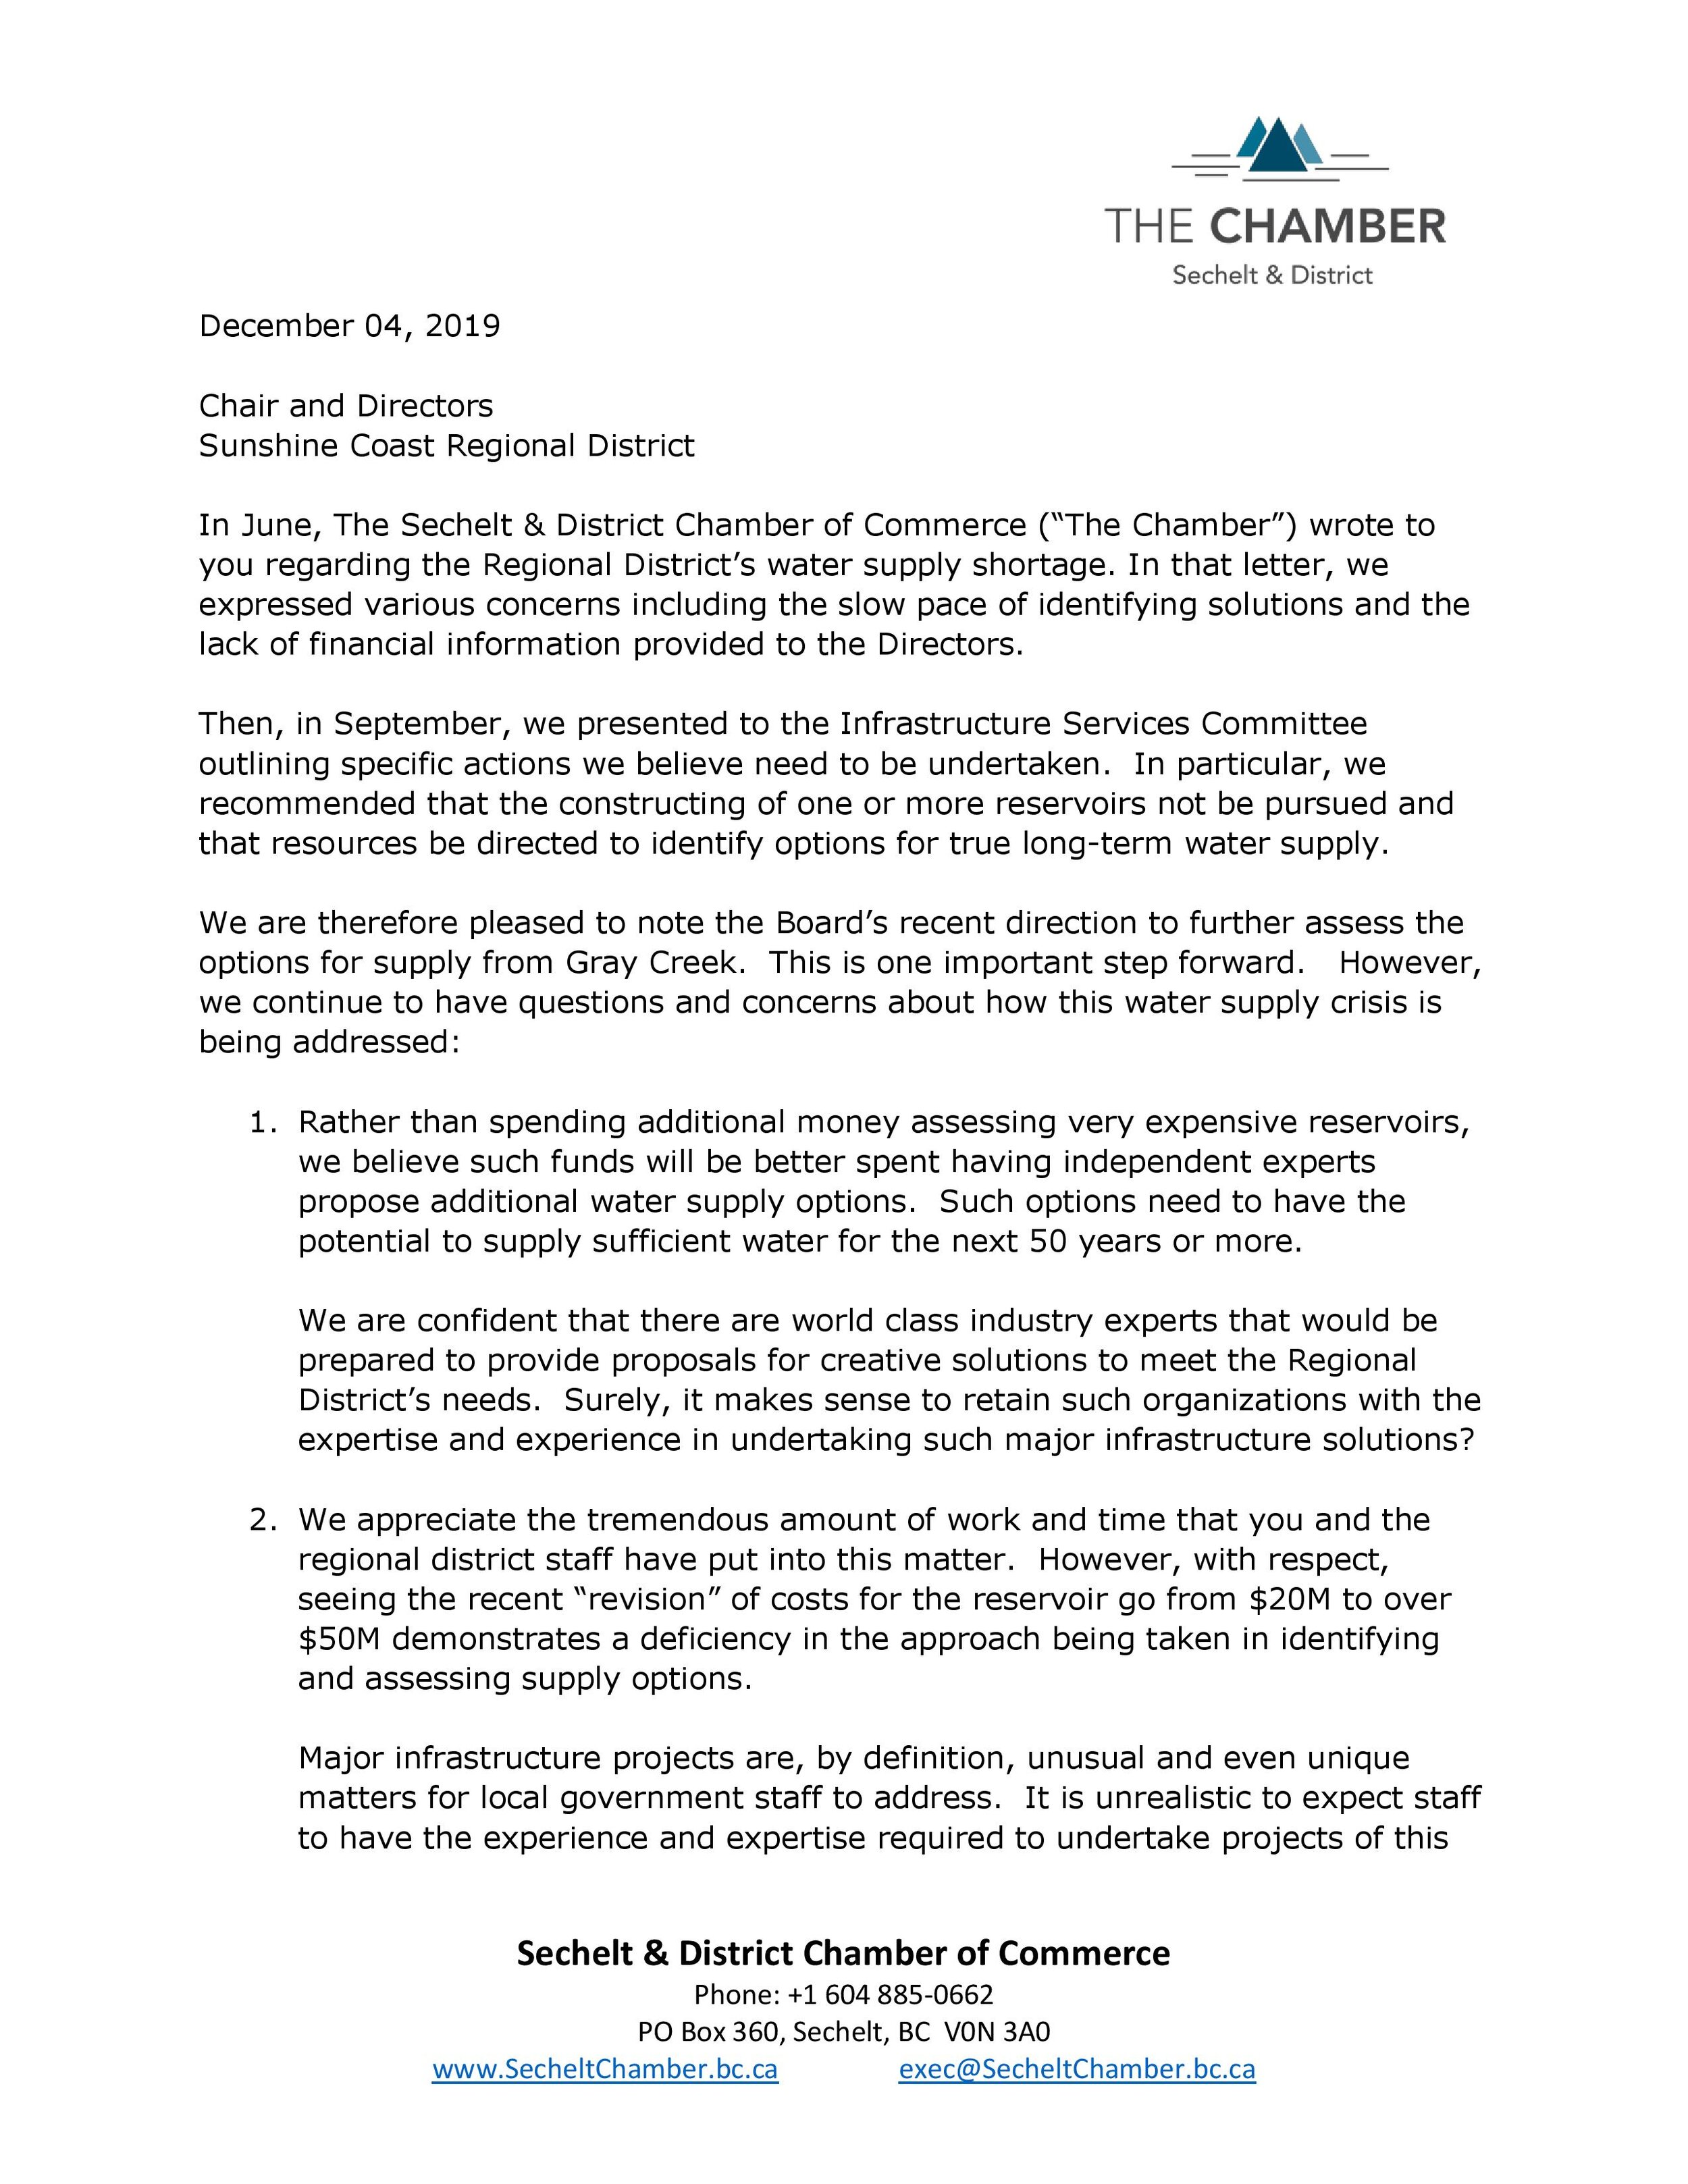 Sechelt Chamber to SCRD - re water supply process - 2019 12 04-page-001.jpg